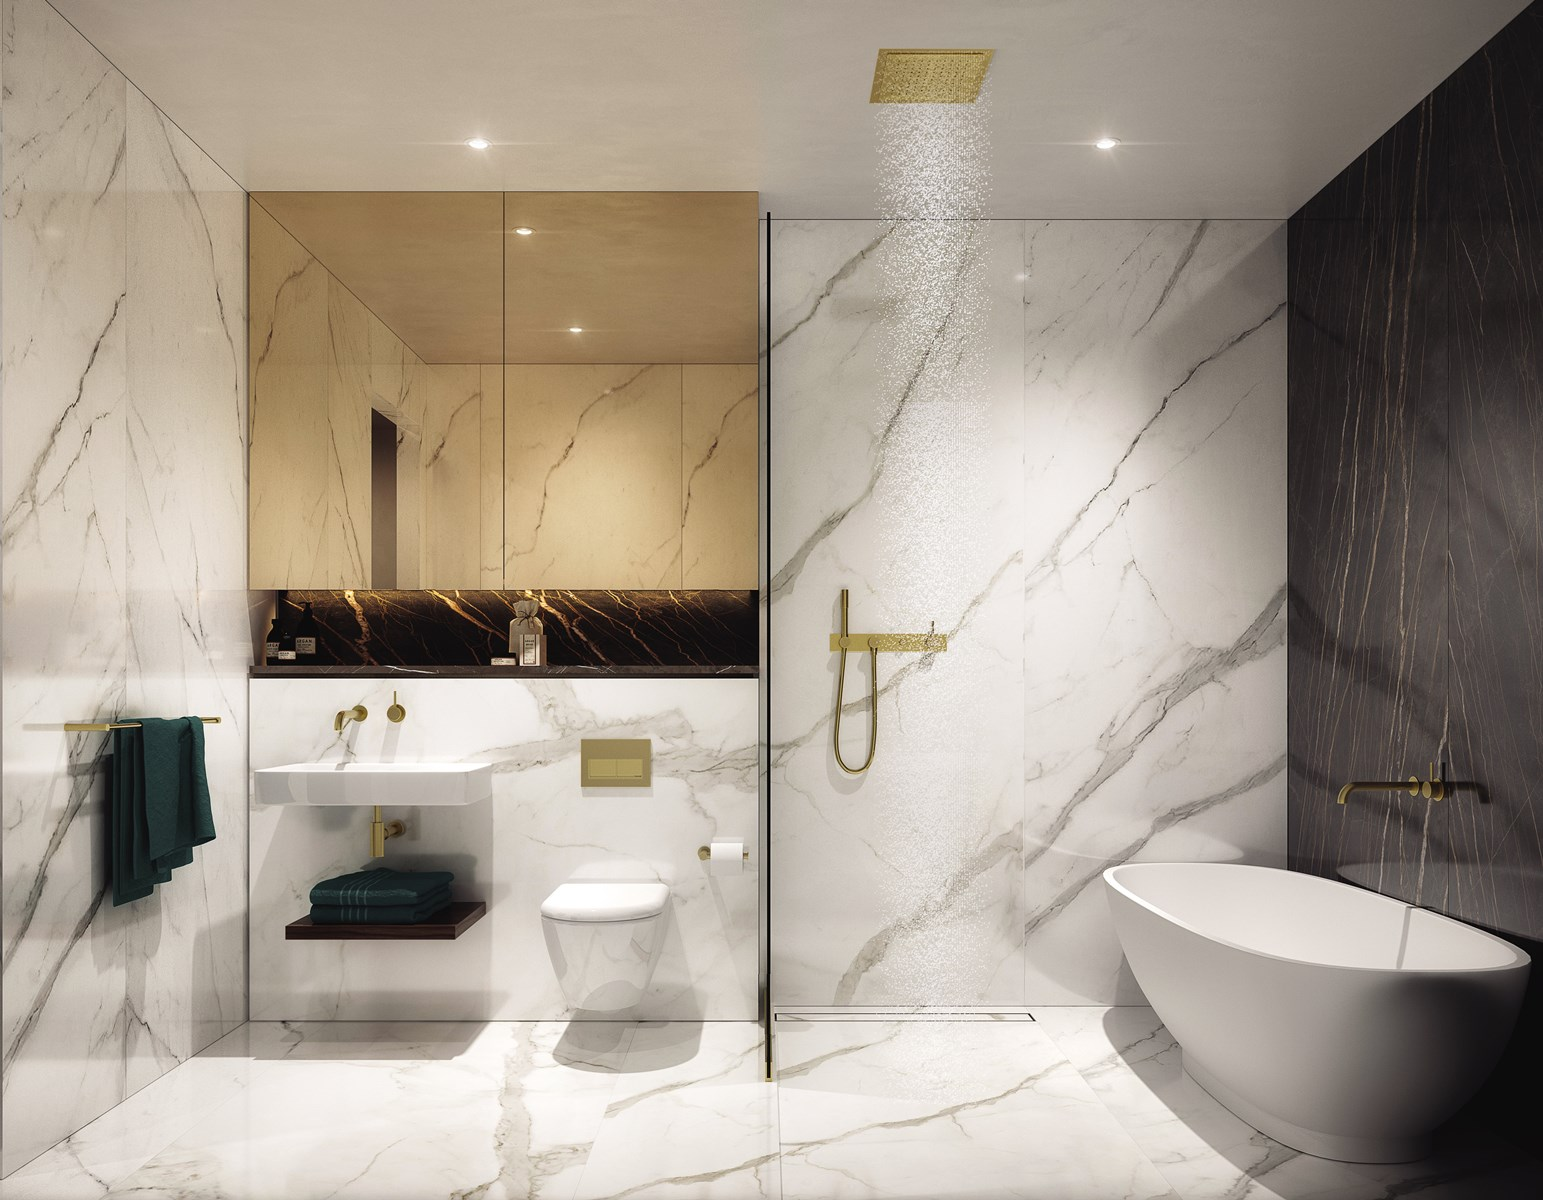 Penthouse Bathroom 2_1.0.jpg